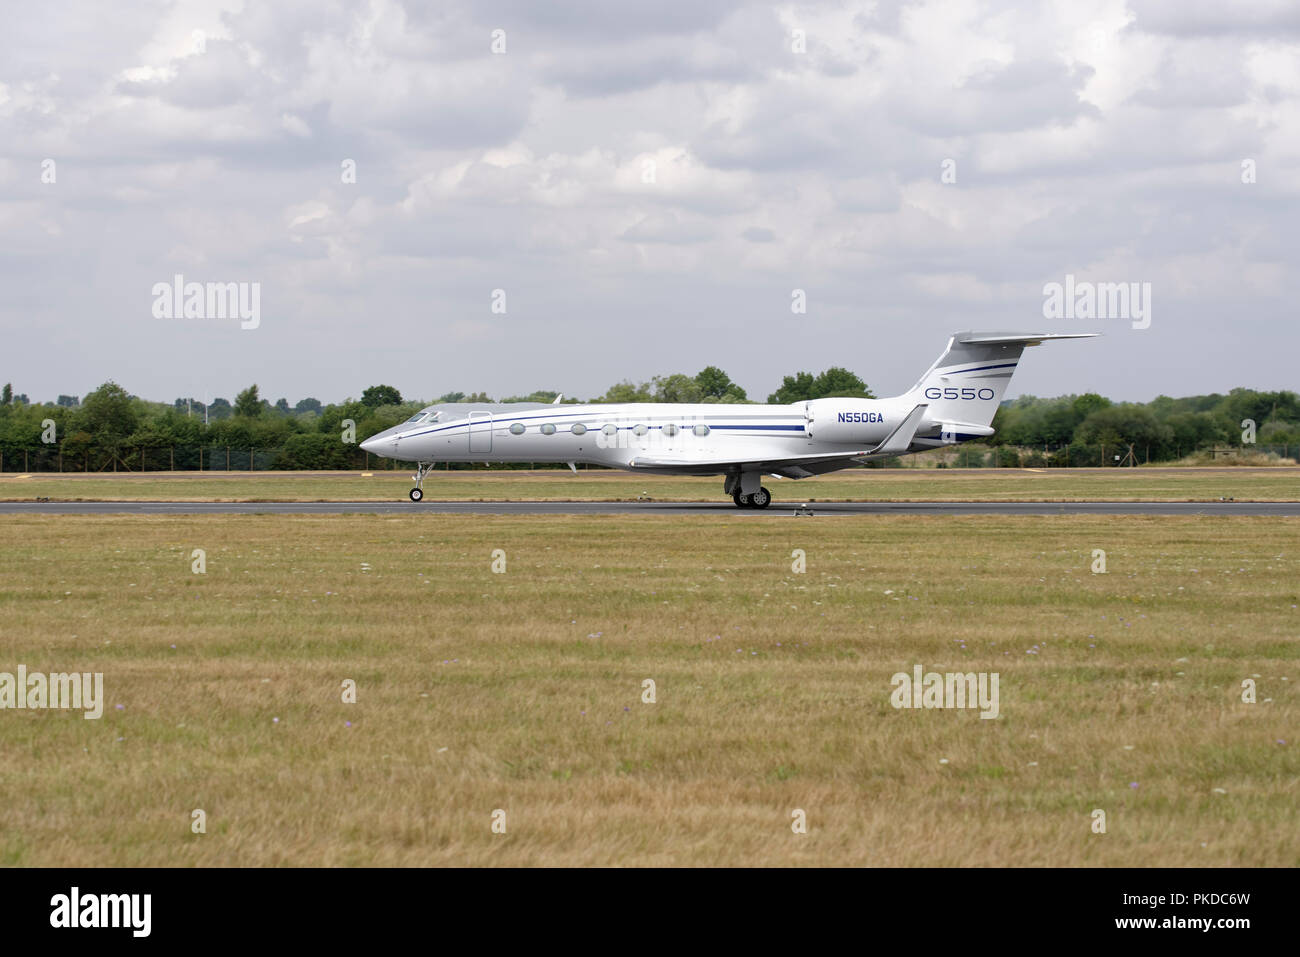 Gulfstream G550 Business Jet on its take off run to depart RAF Fairford in the United Kingdom where it was participating in the RIAT airshow - Stock Image